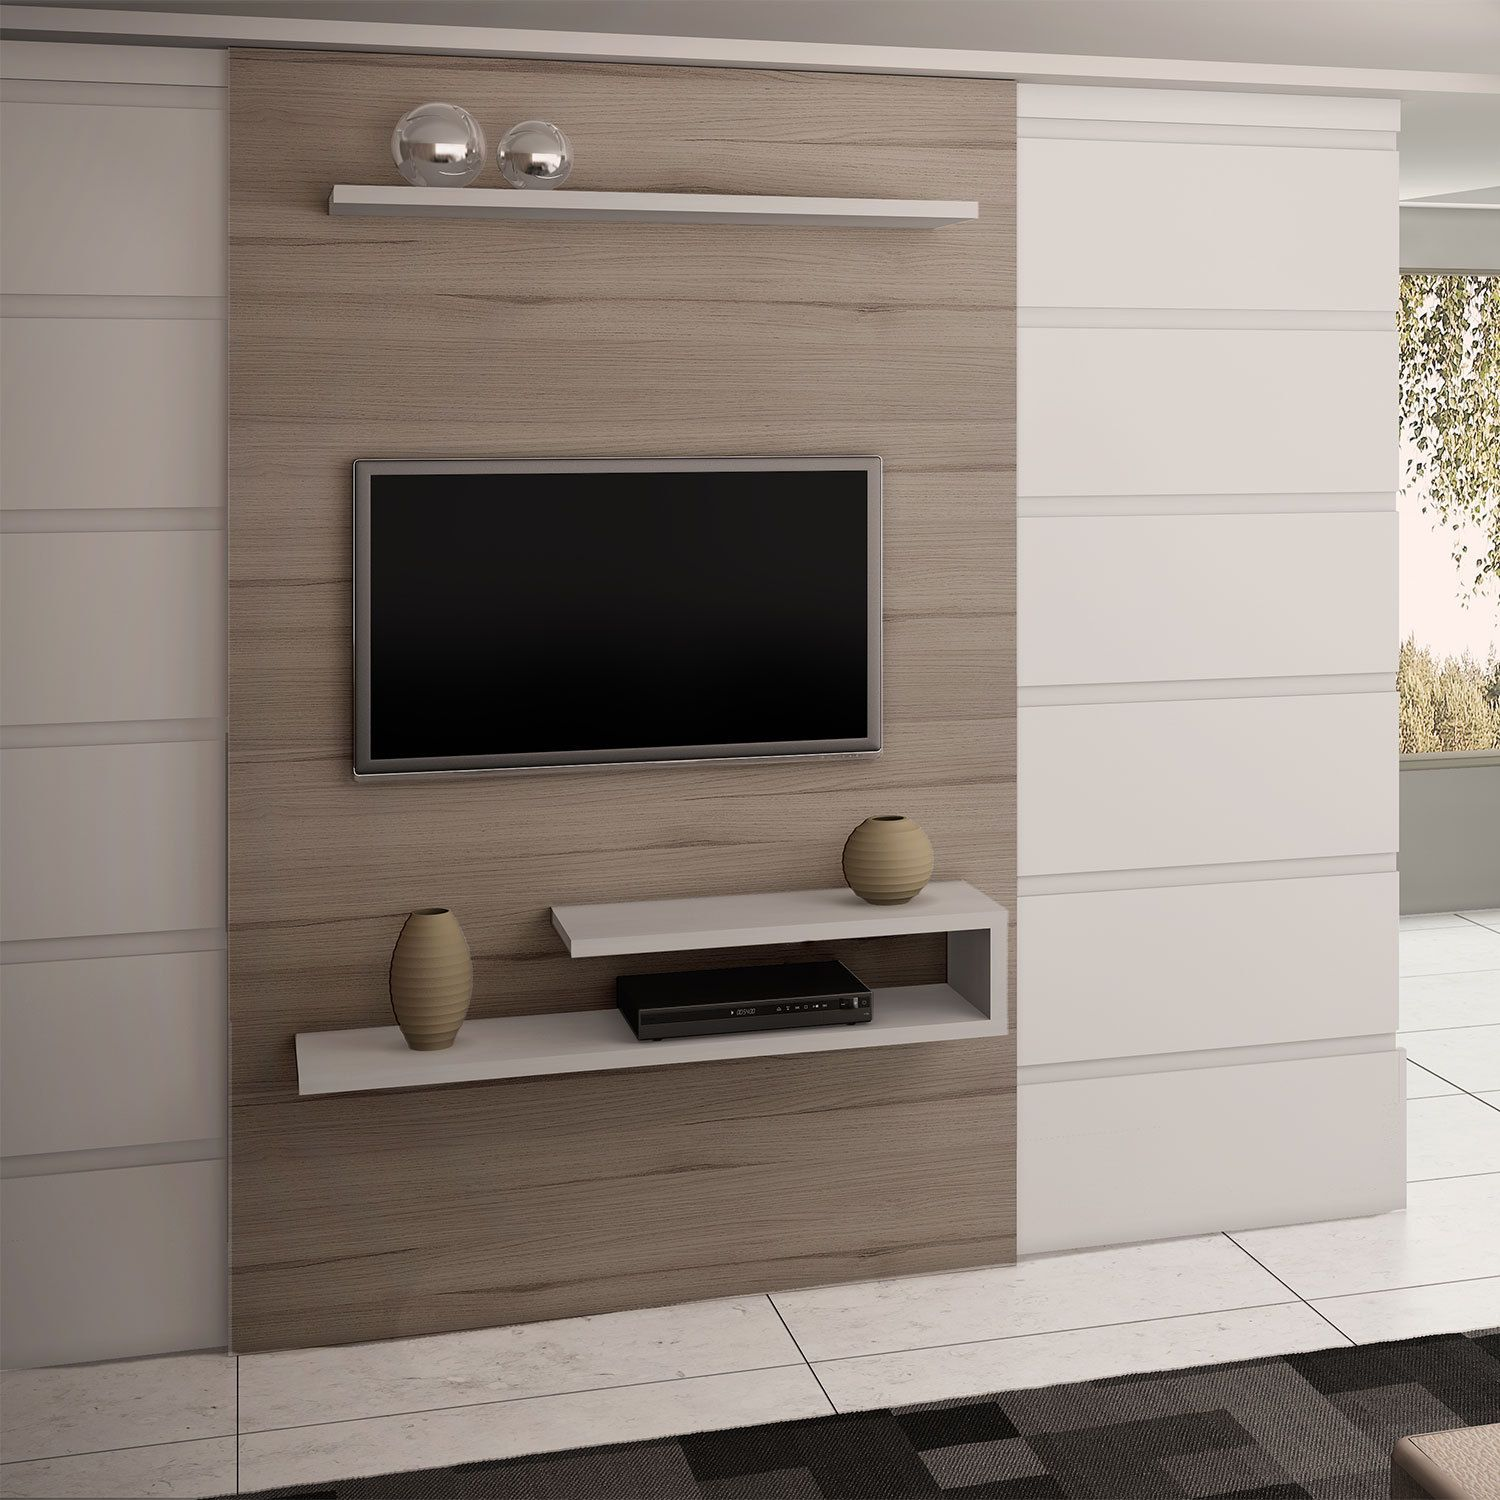 Idea For Fireplace Wall Do Shou Sugi Ban For Fireplace Background And The Flank With Marble Or Quar Living Room Decor Modern Tv Wall Design Living Room Tv Wall #wall #mounted #tv #living #room